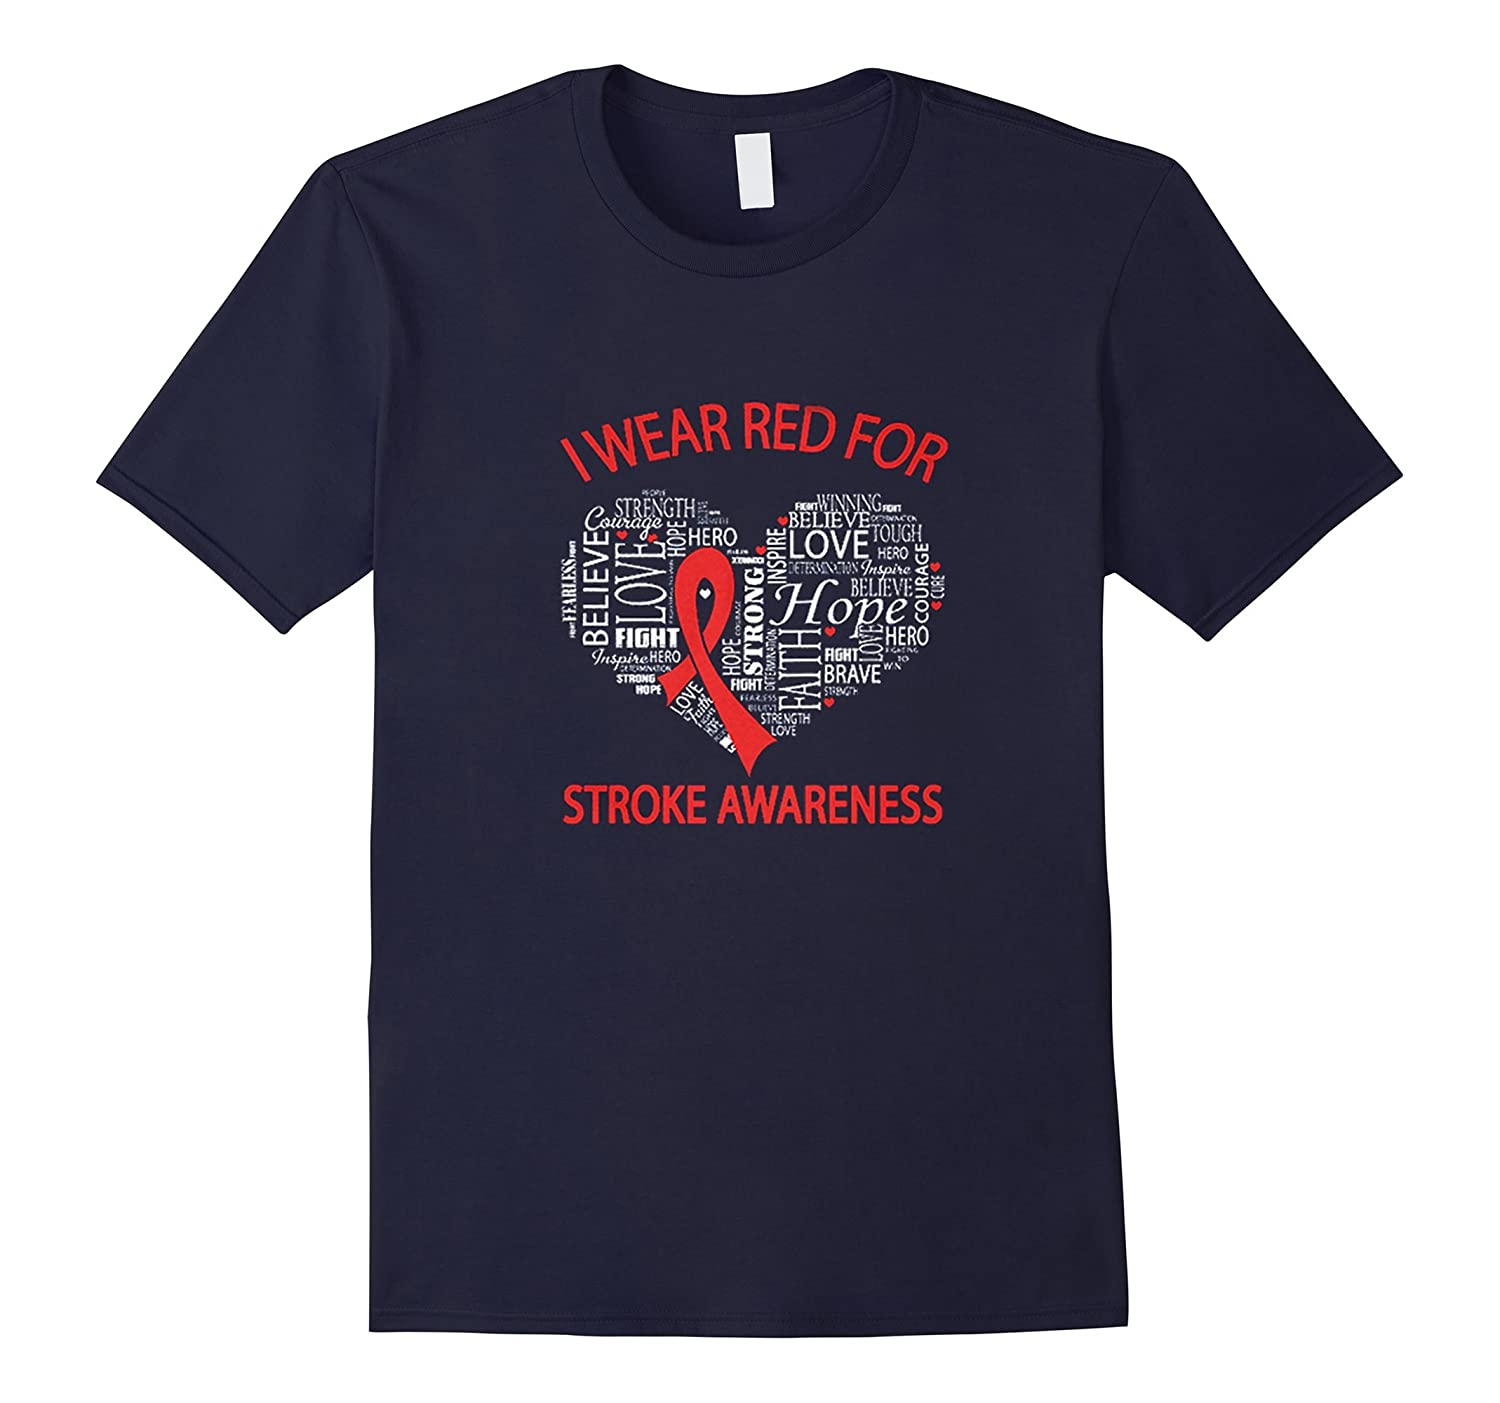 I Wear Red For Stroke Awareness T-shirt-Vaci